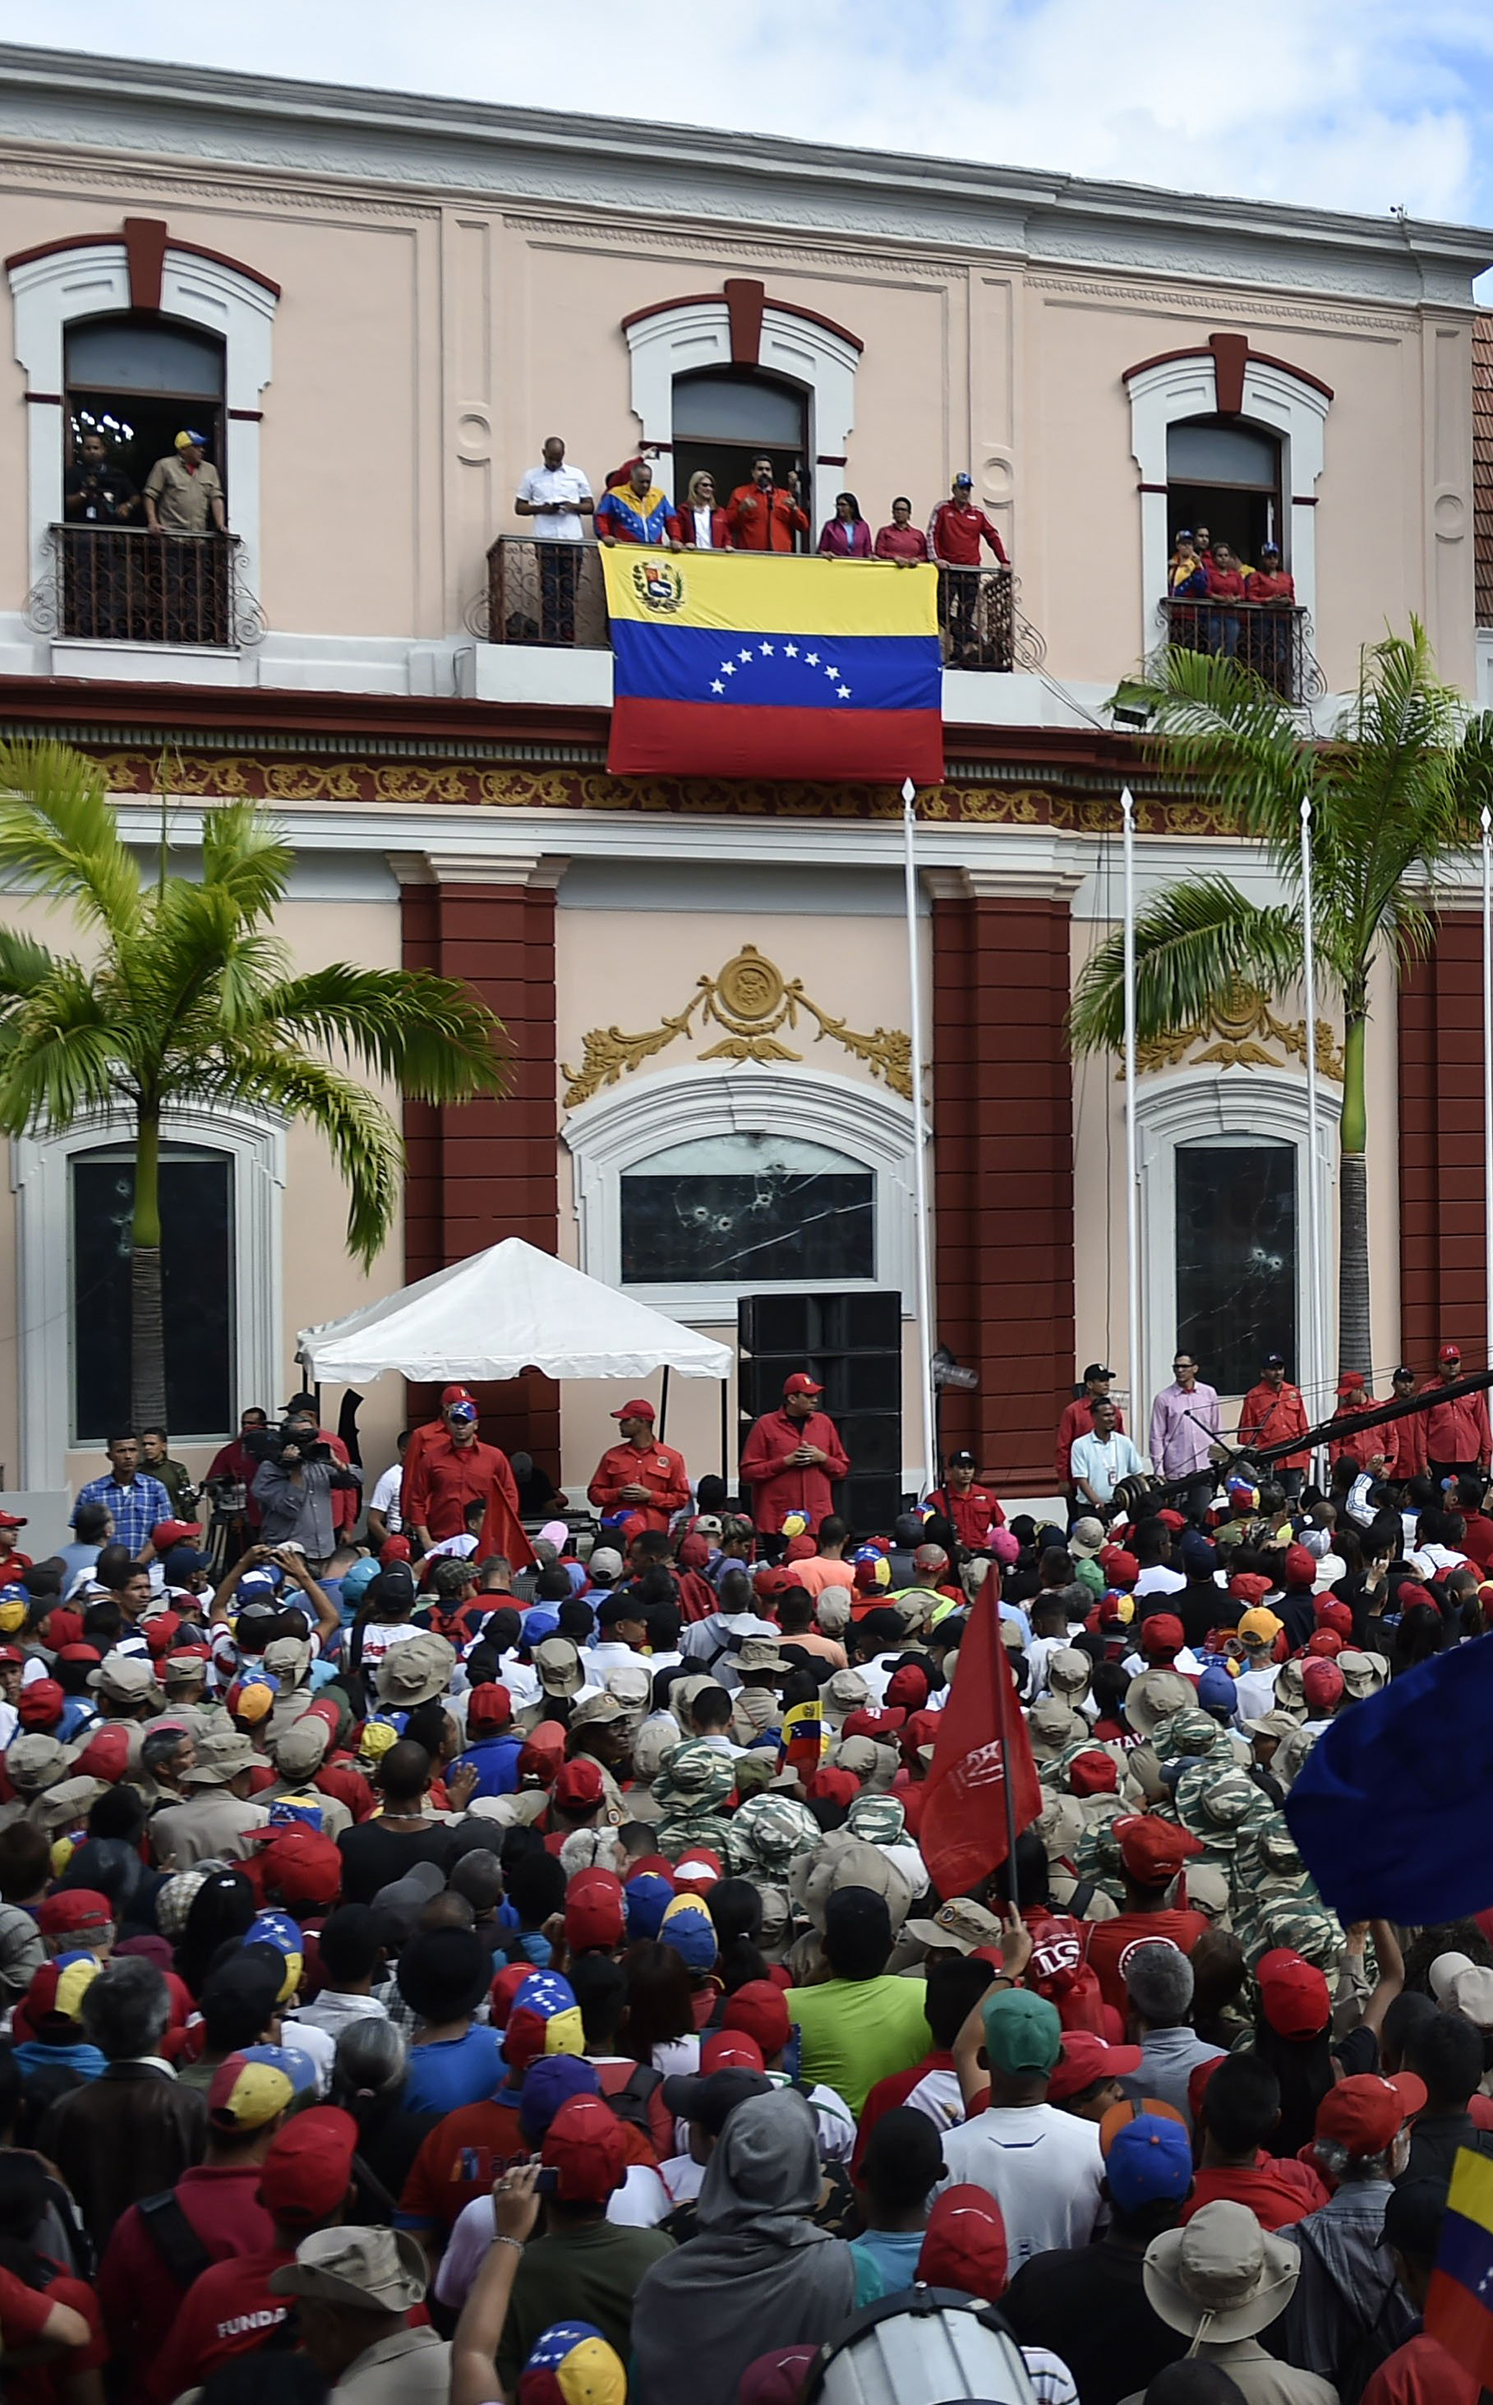 President Nicolás Maduro announces he will break off diplomatic ties with the U.S., in response to Trump's acknowledgment of Guaidó as  interim president,  during a gathering in Caracas on Jan. 23, 2019.